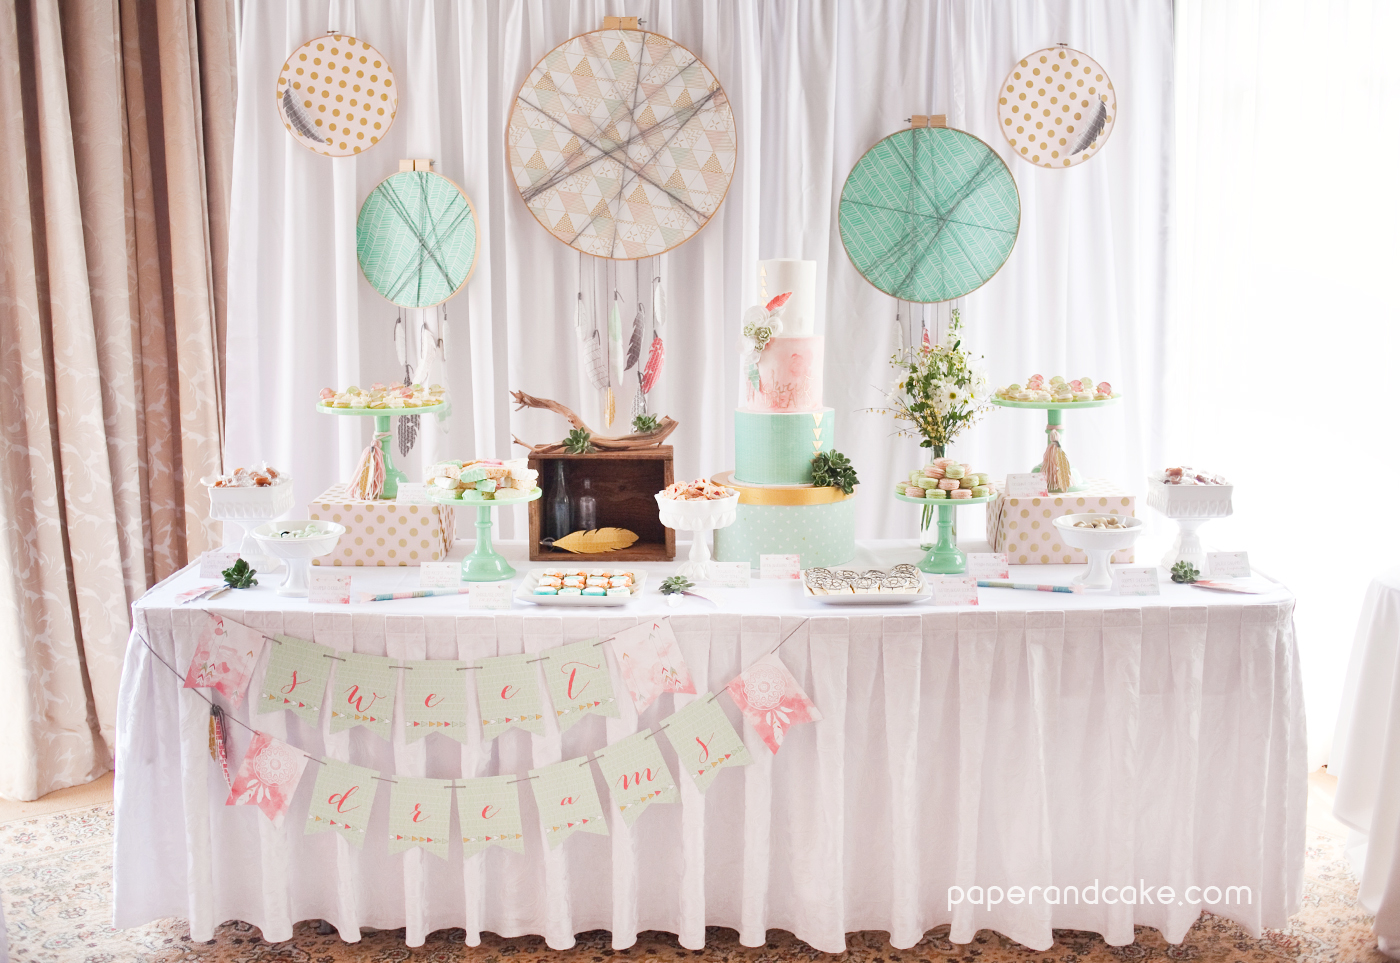 Bohemian Printable Party Paper And Cake